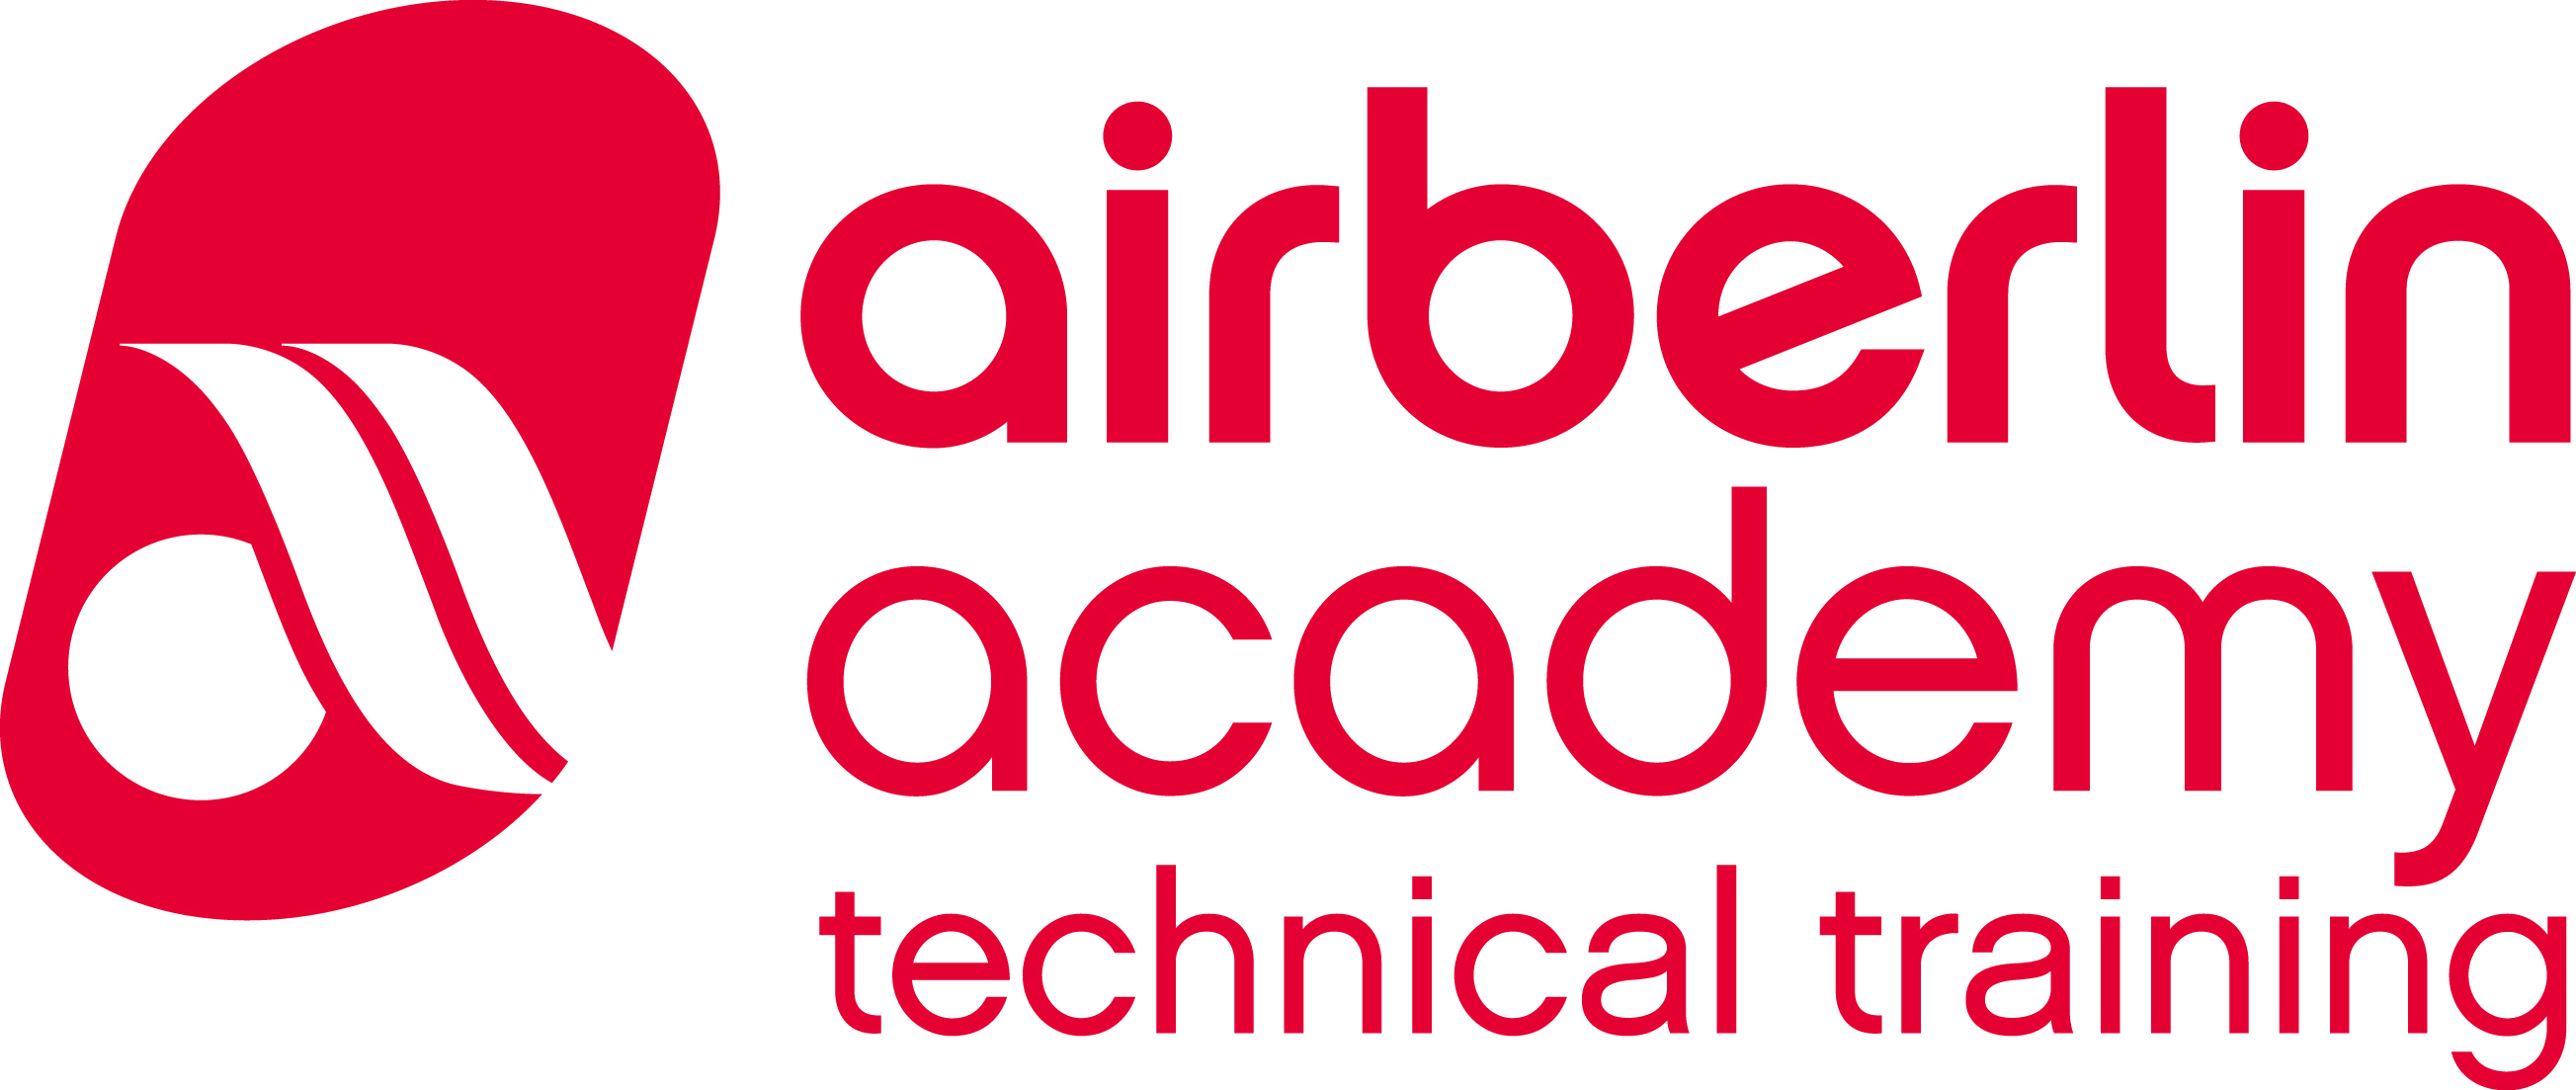 Air Berlin Technical Training logo